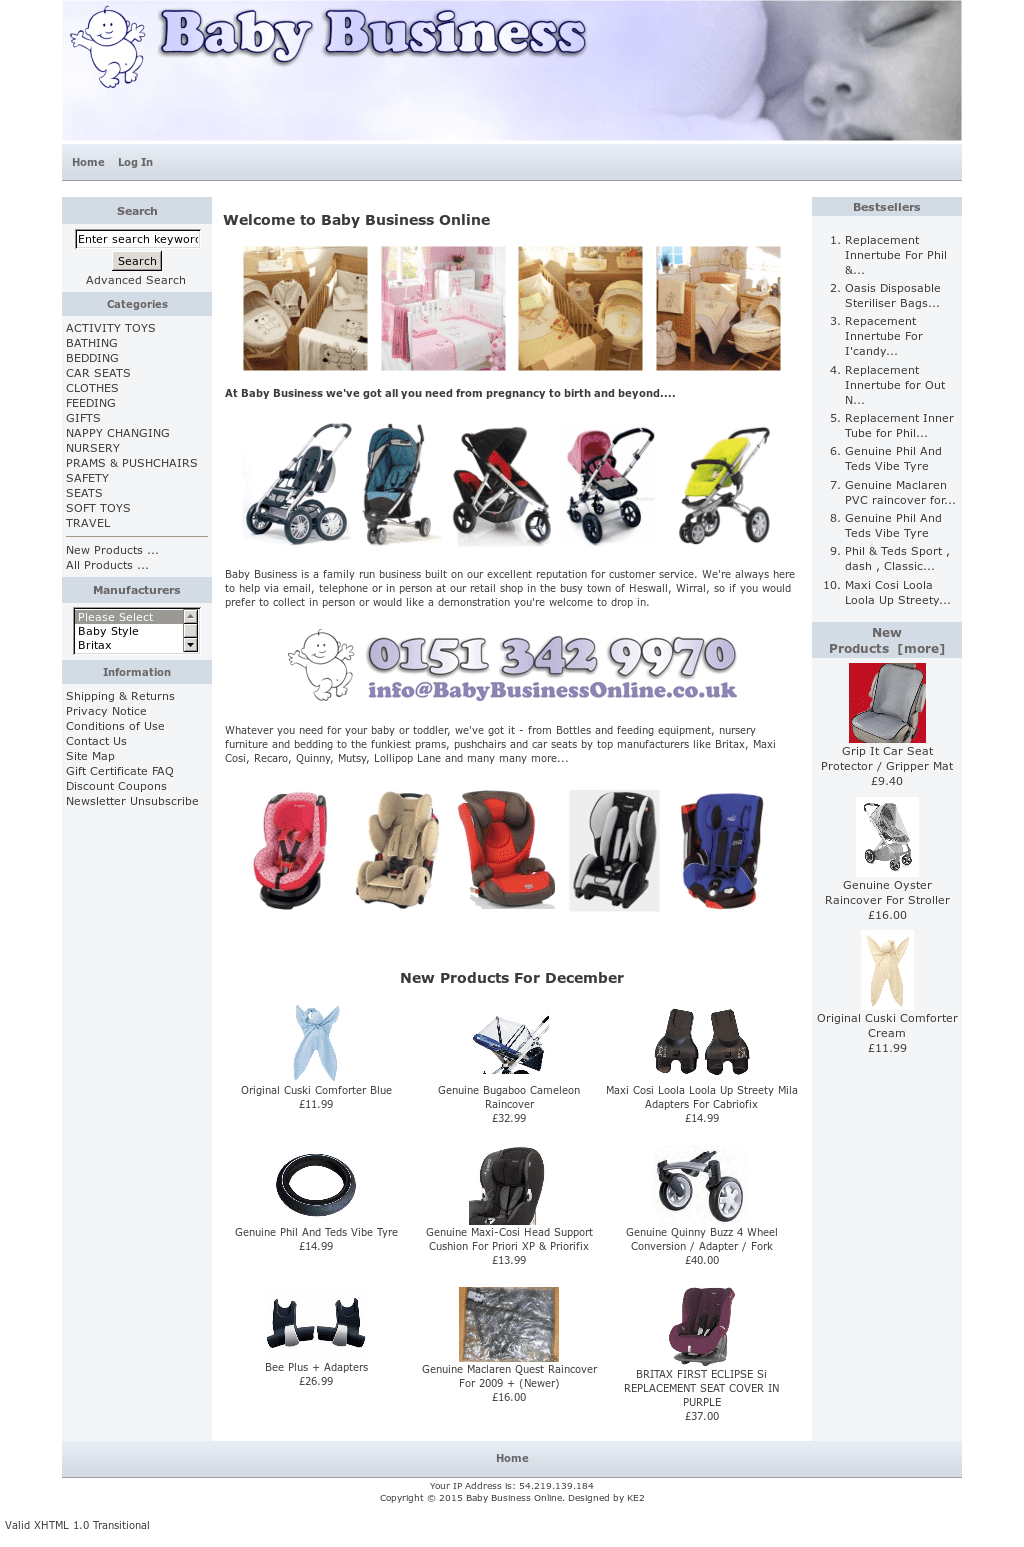 Maxi Cosi Loola Car Seat Adapters Baby Business Online Competitors Revenue And Employees